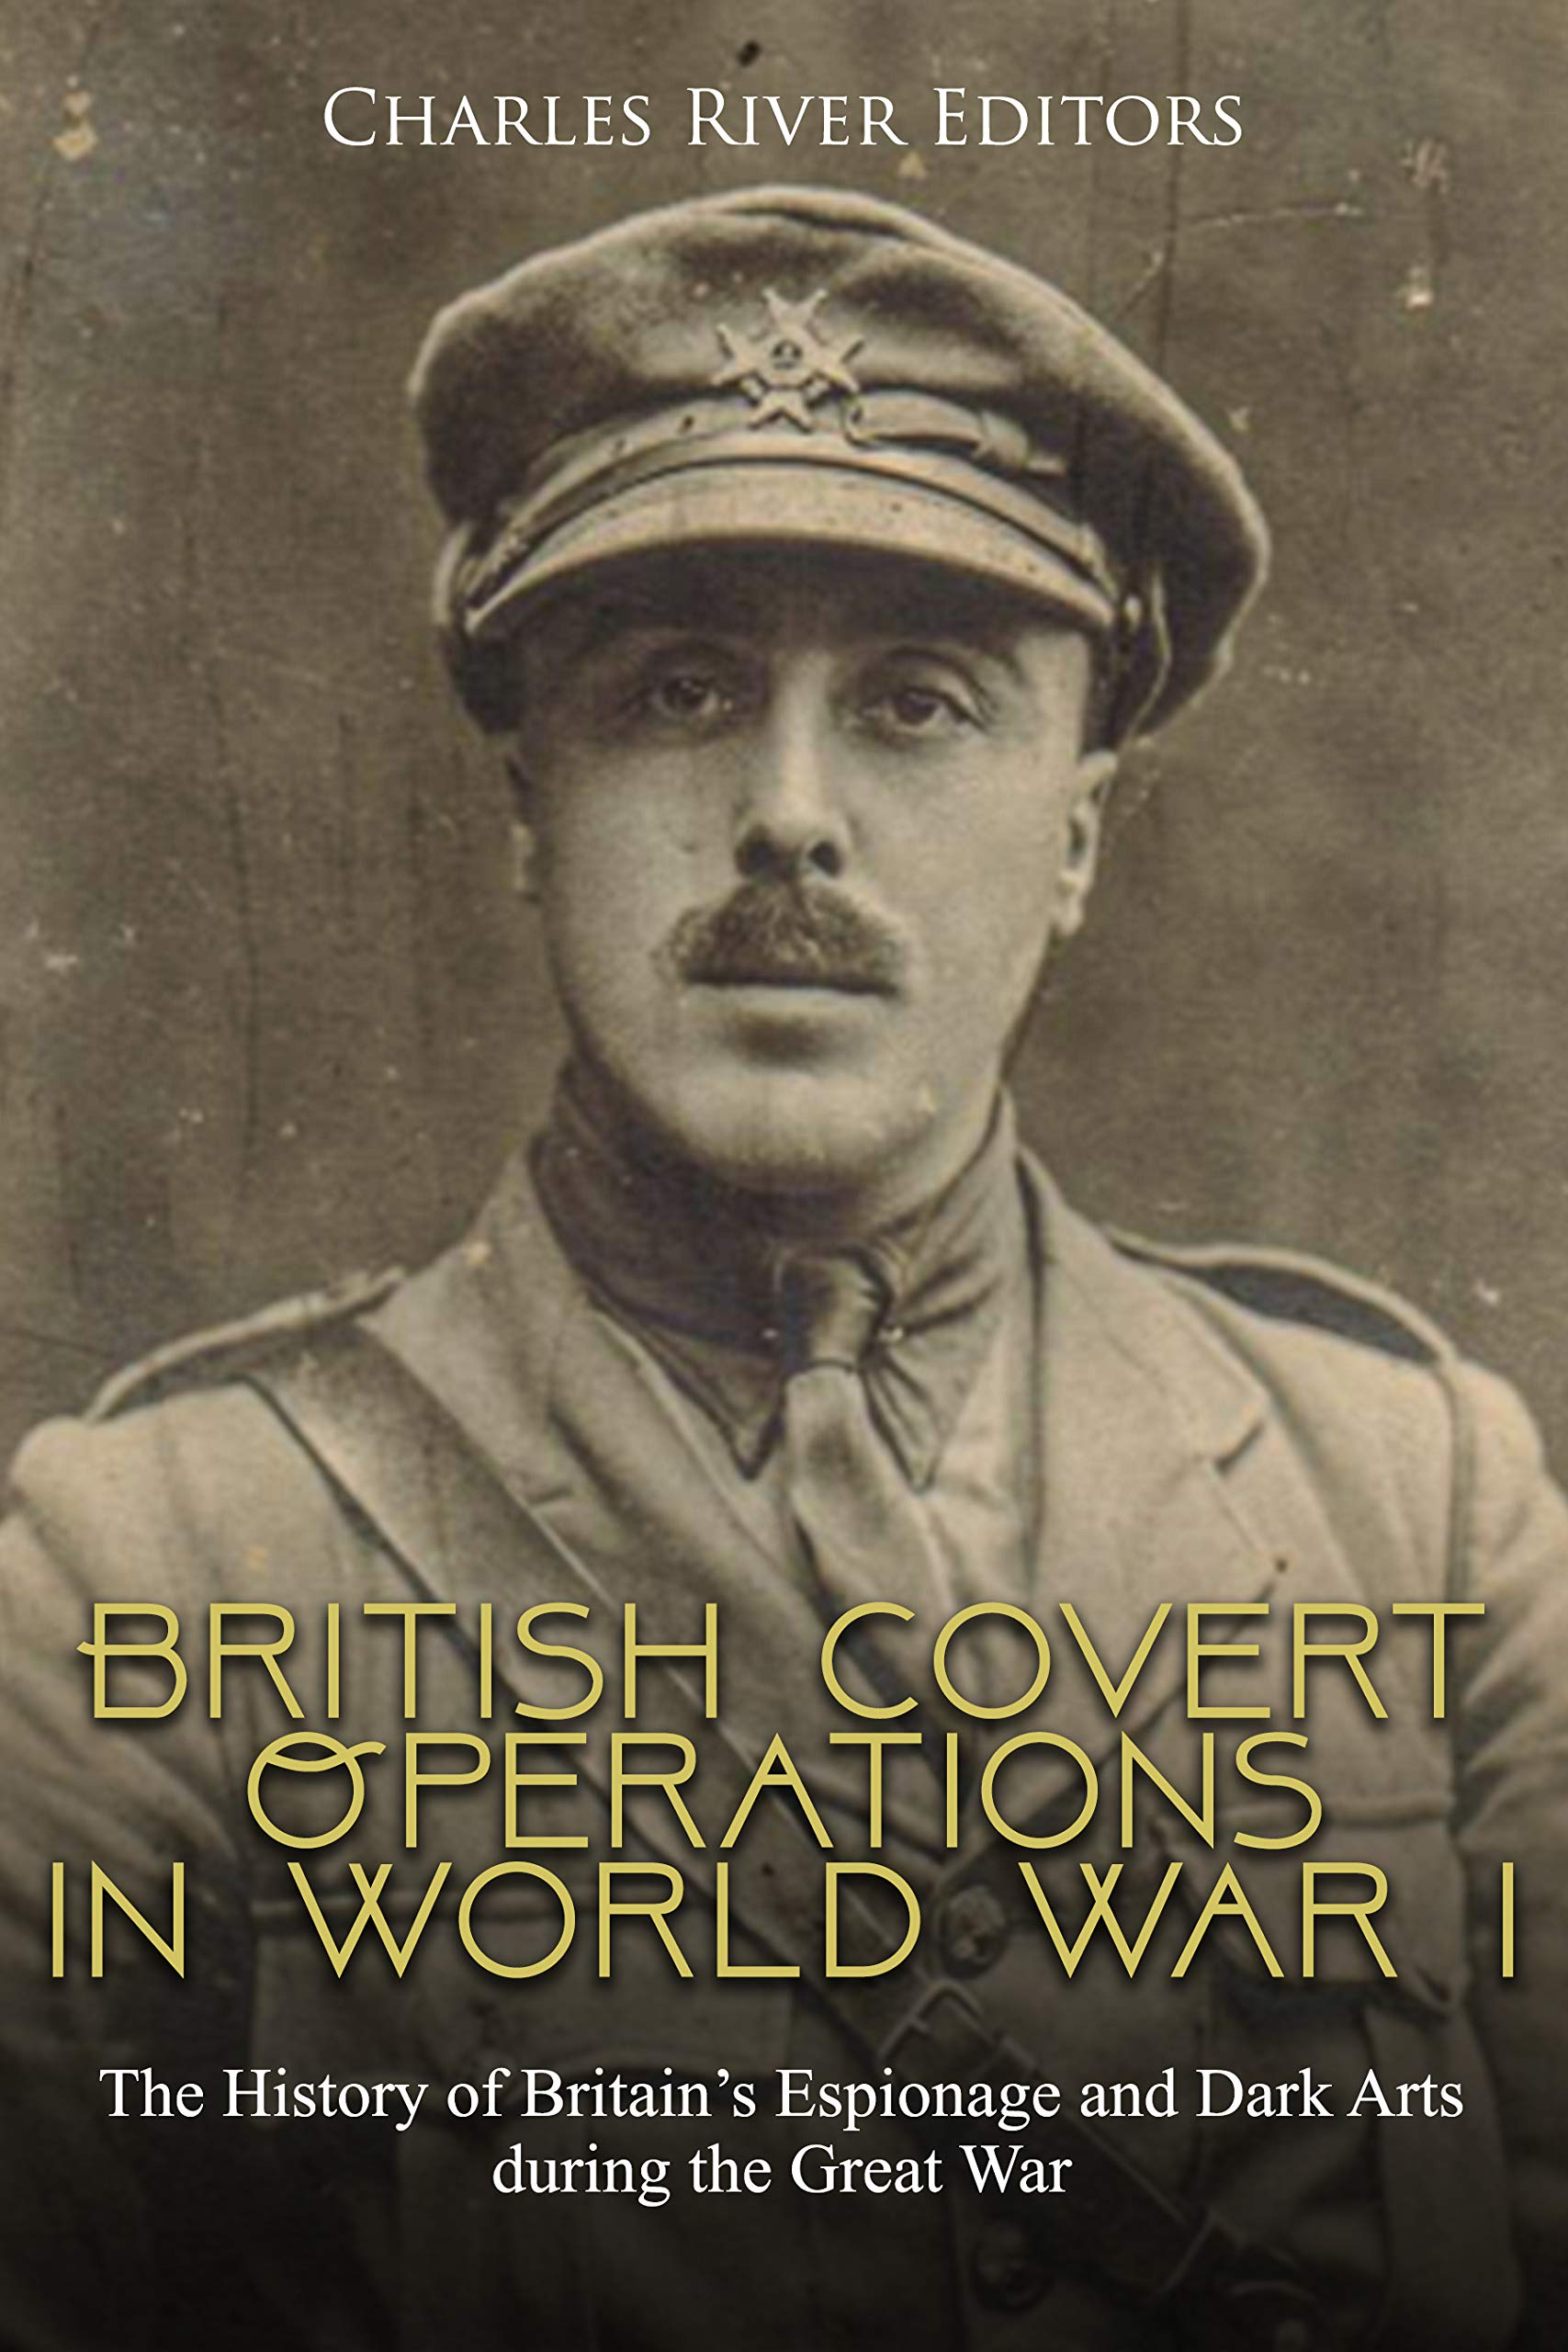 British Covert Operations in World War I: The